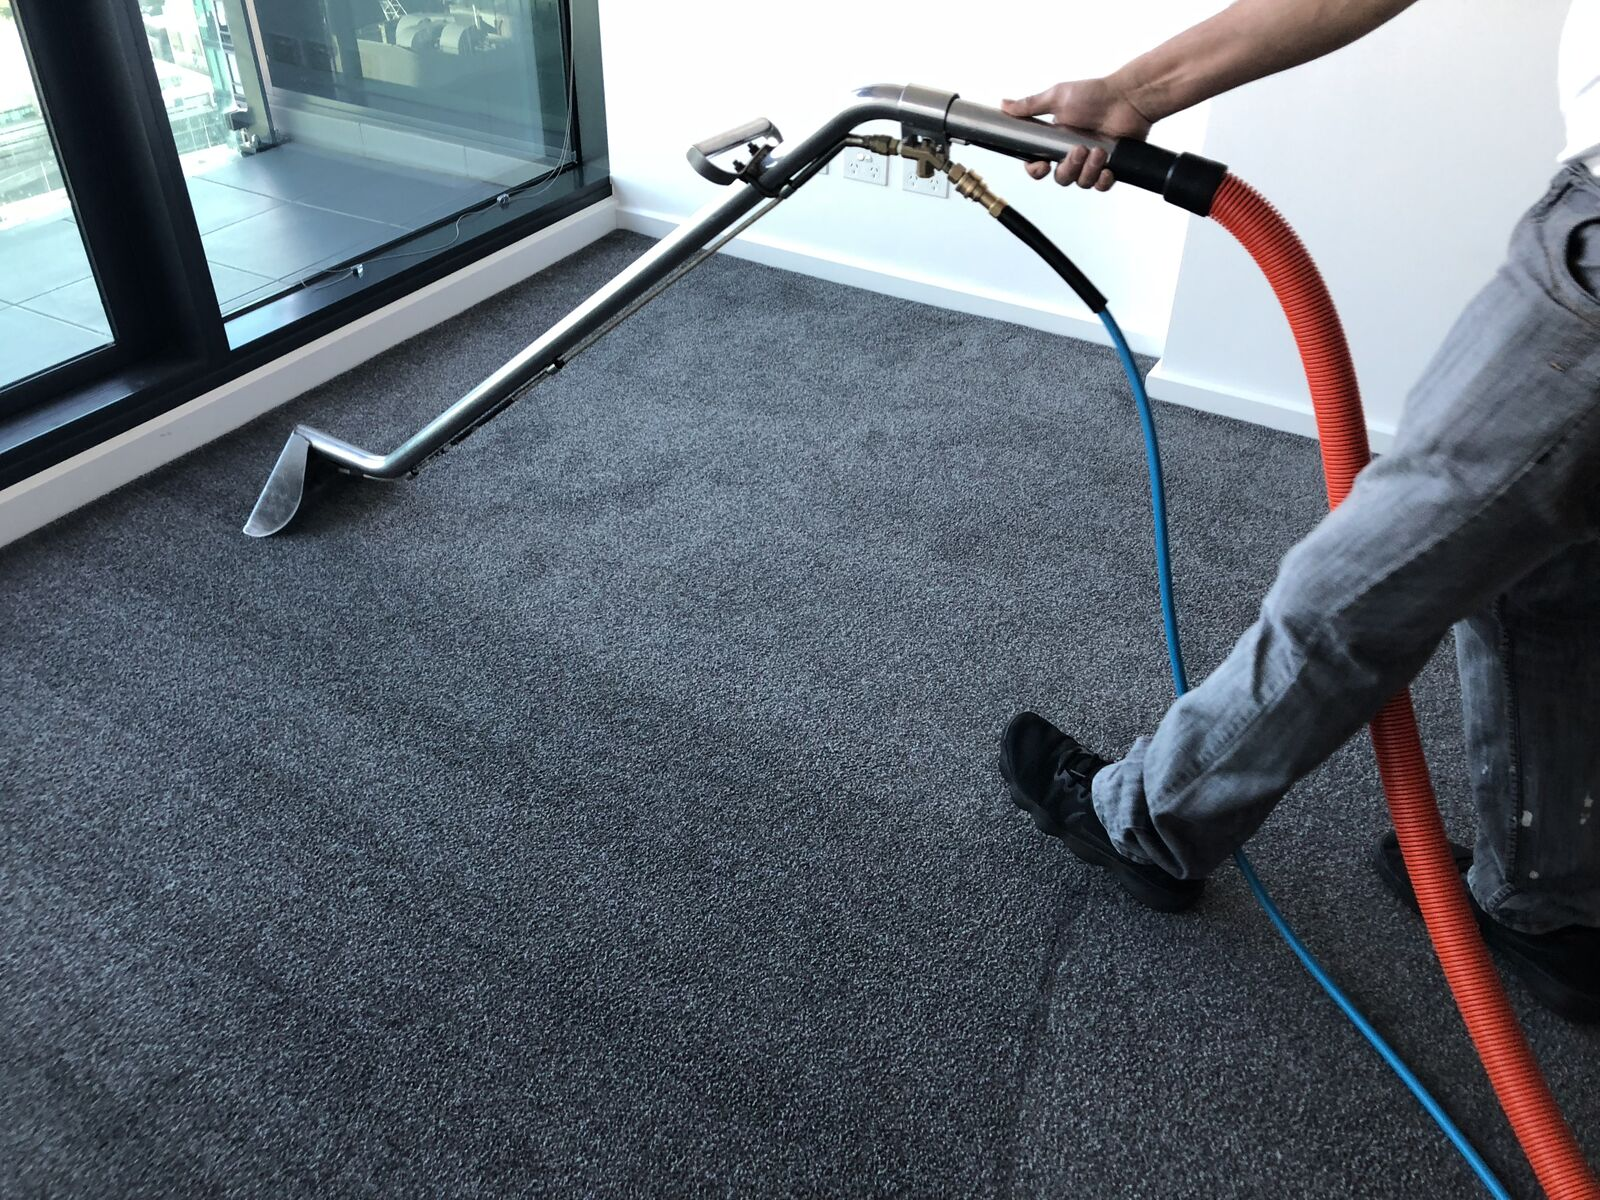 #Carpet Cleaning #Carpet Steam Cleaning